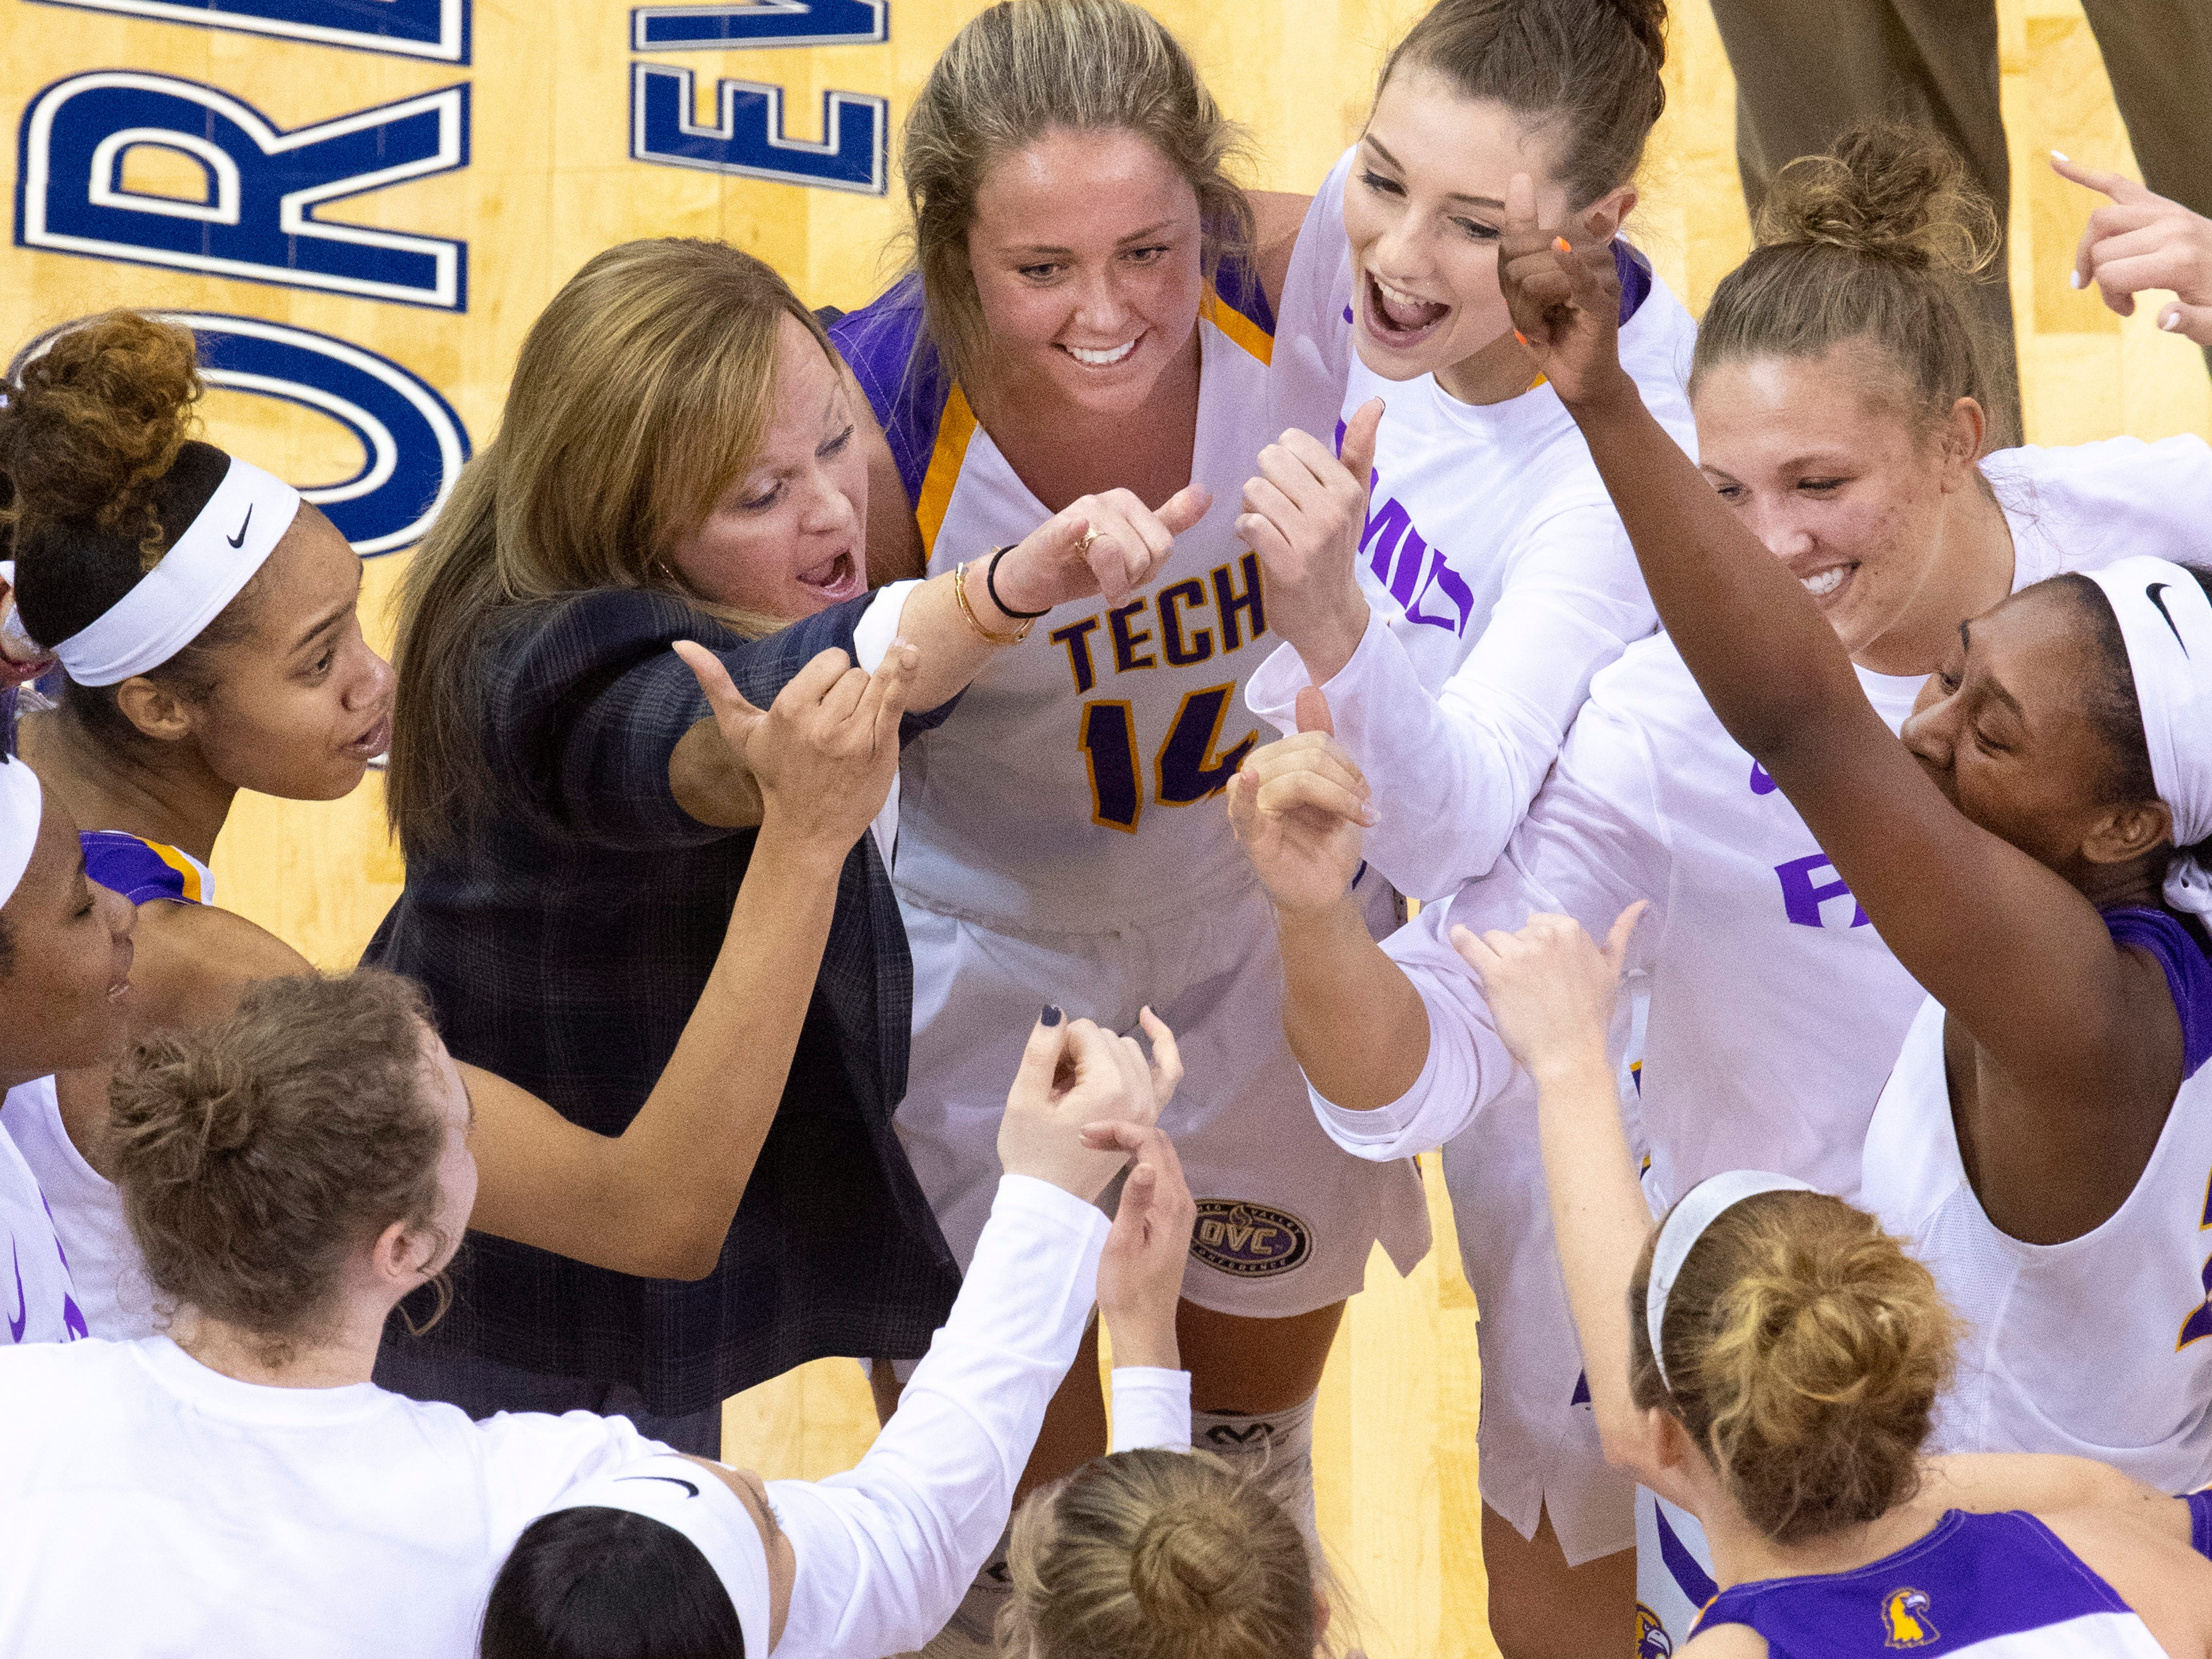 Tennessee Tech celebrates their win over Austin Peay after their quarterfinal game of the Ohio Valley Conference Women's Basketball Championship at the Ford Center Thursday afternoon. Tennessee Tech came out on top and advanced to Friday's semifinal game.